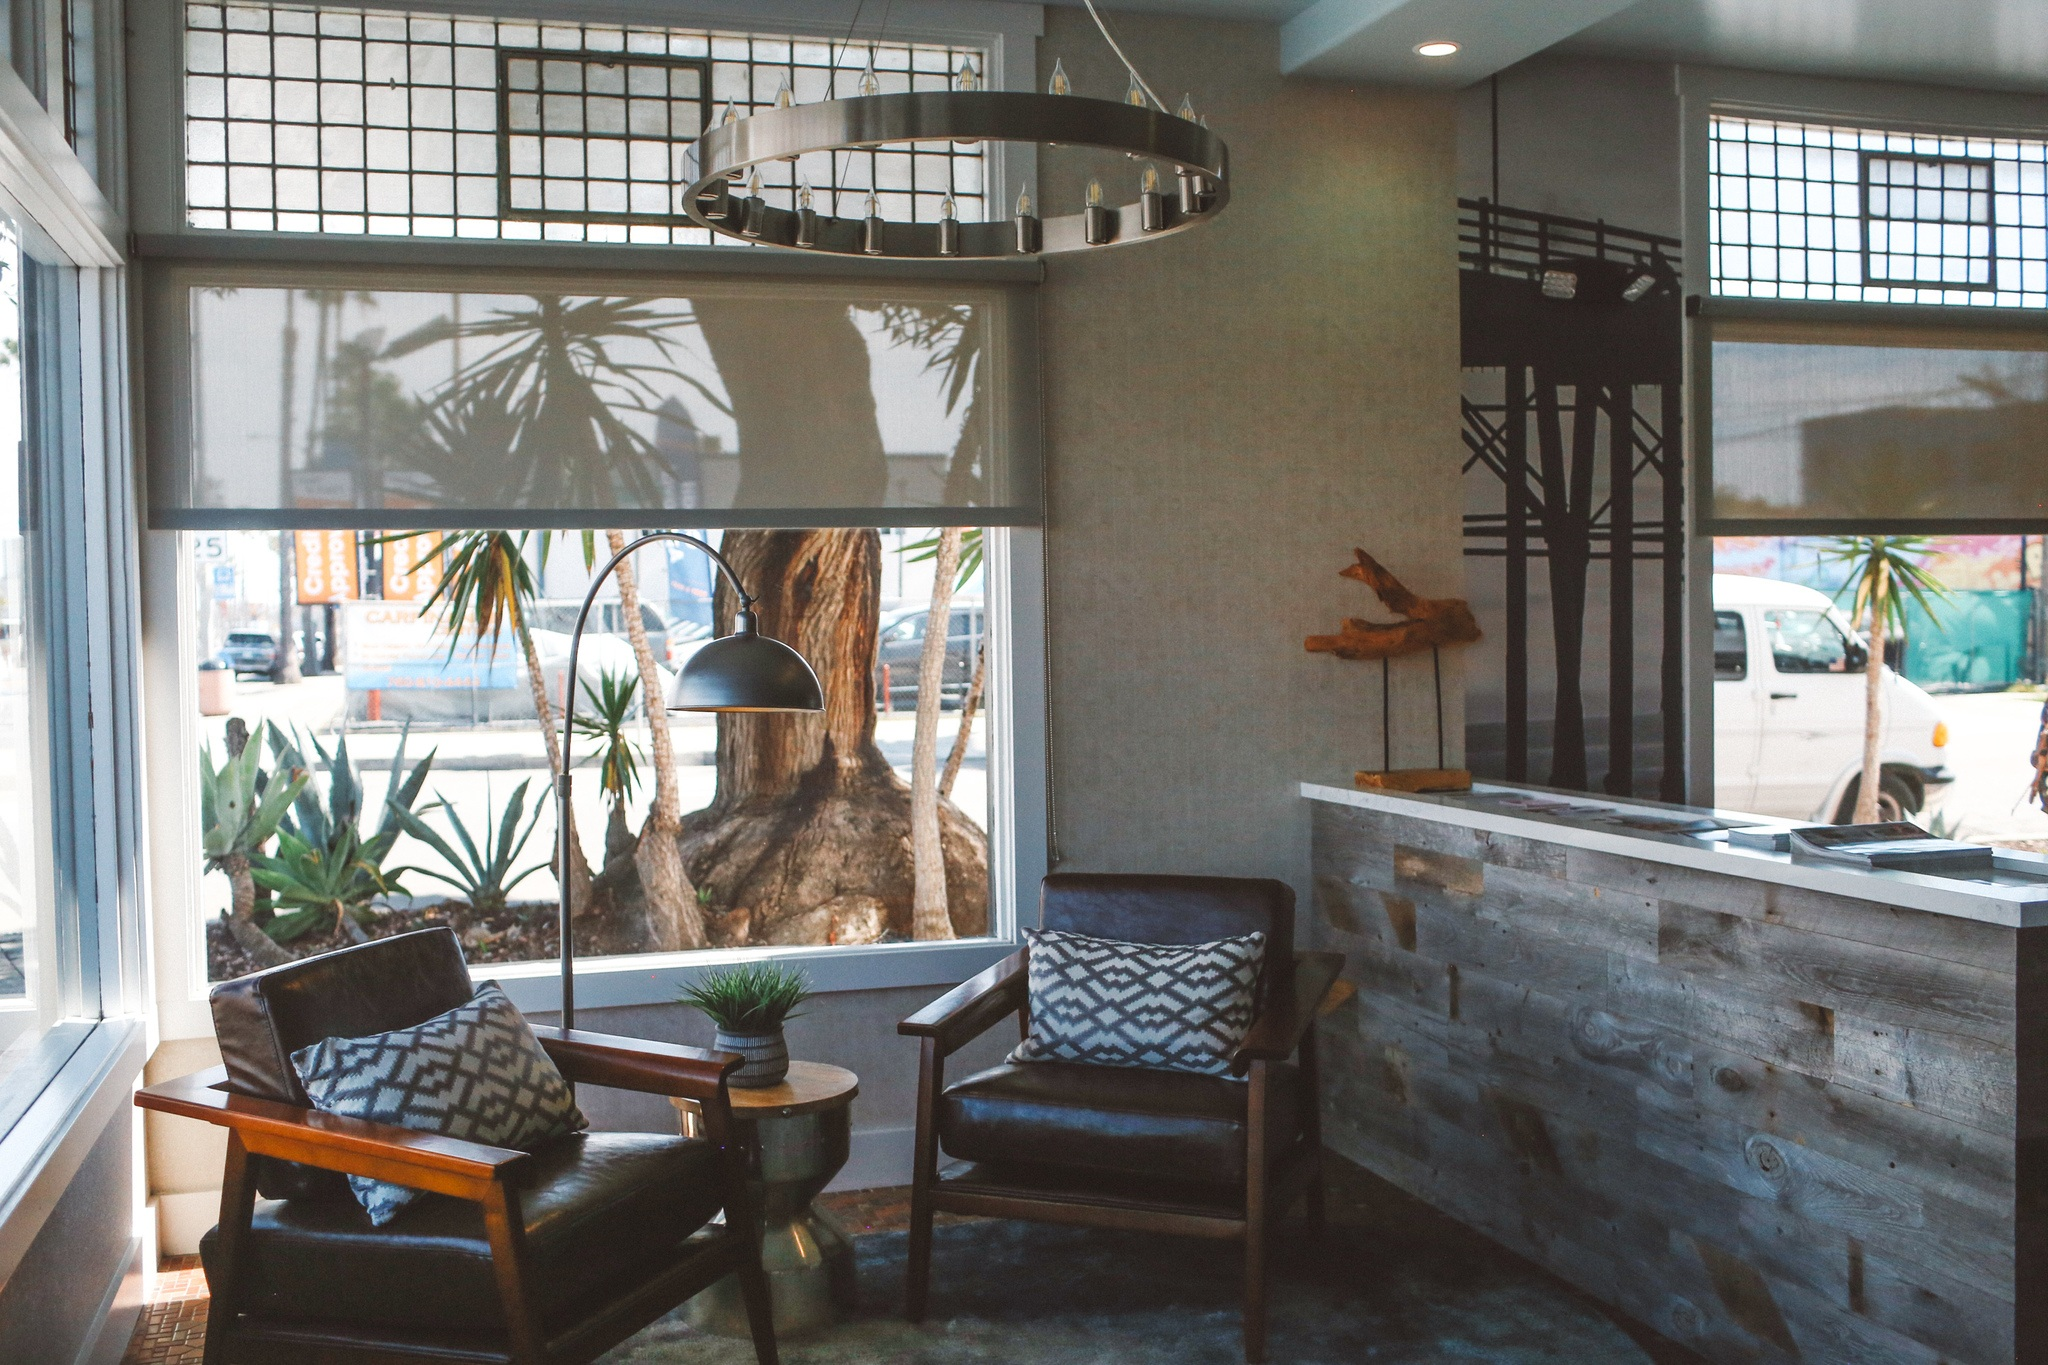 Interior of the Fin Hotel in Oceanside, Ca